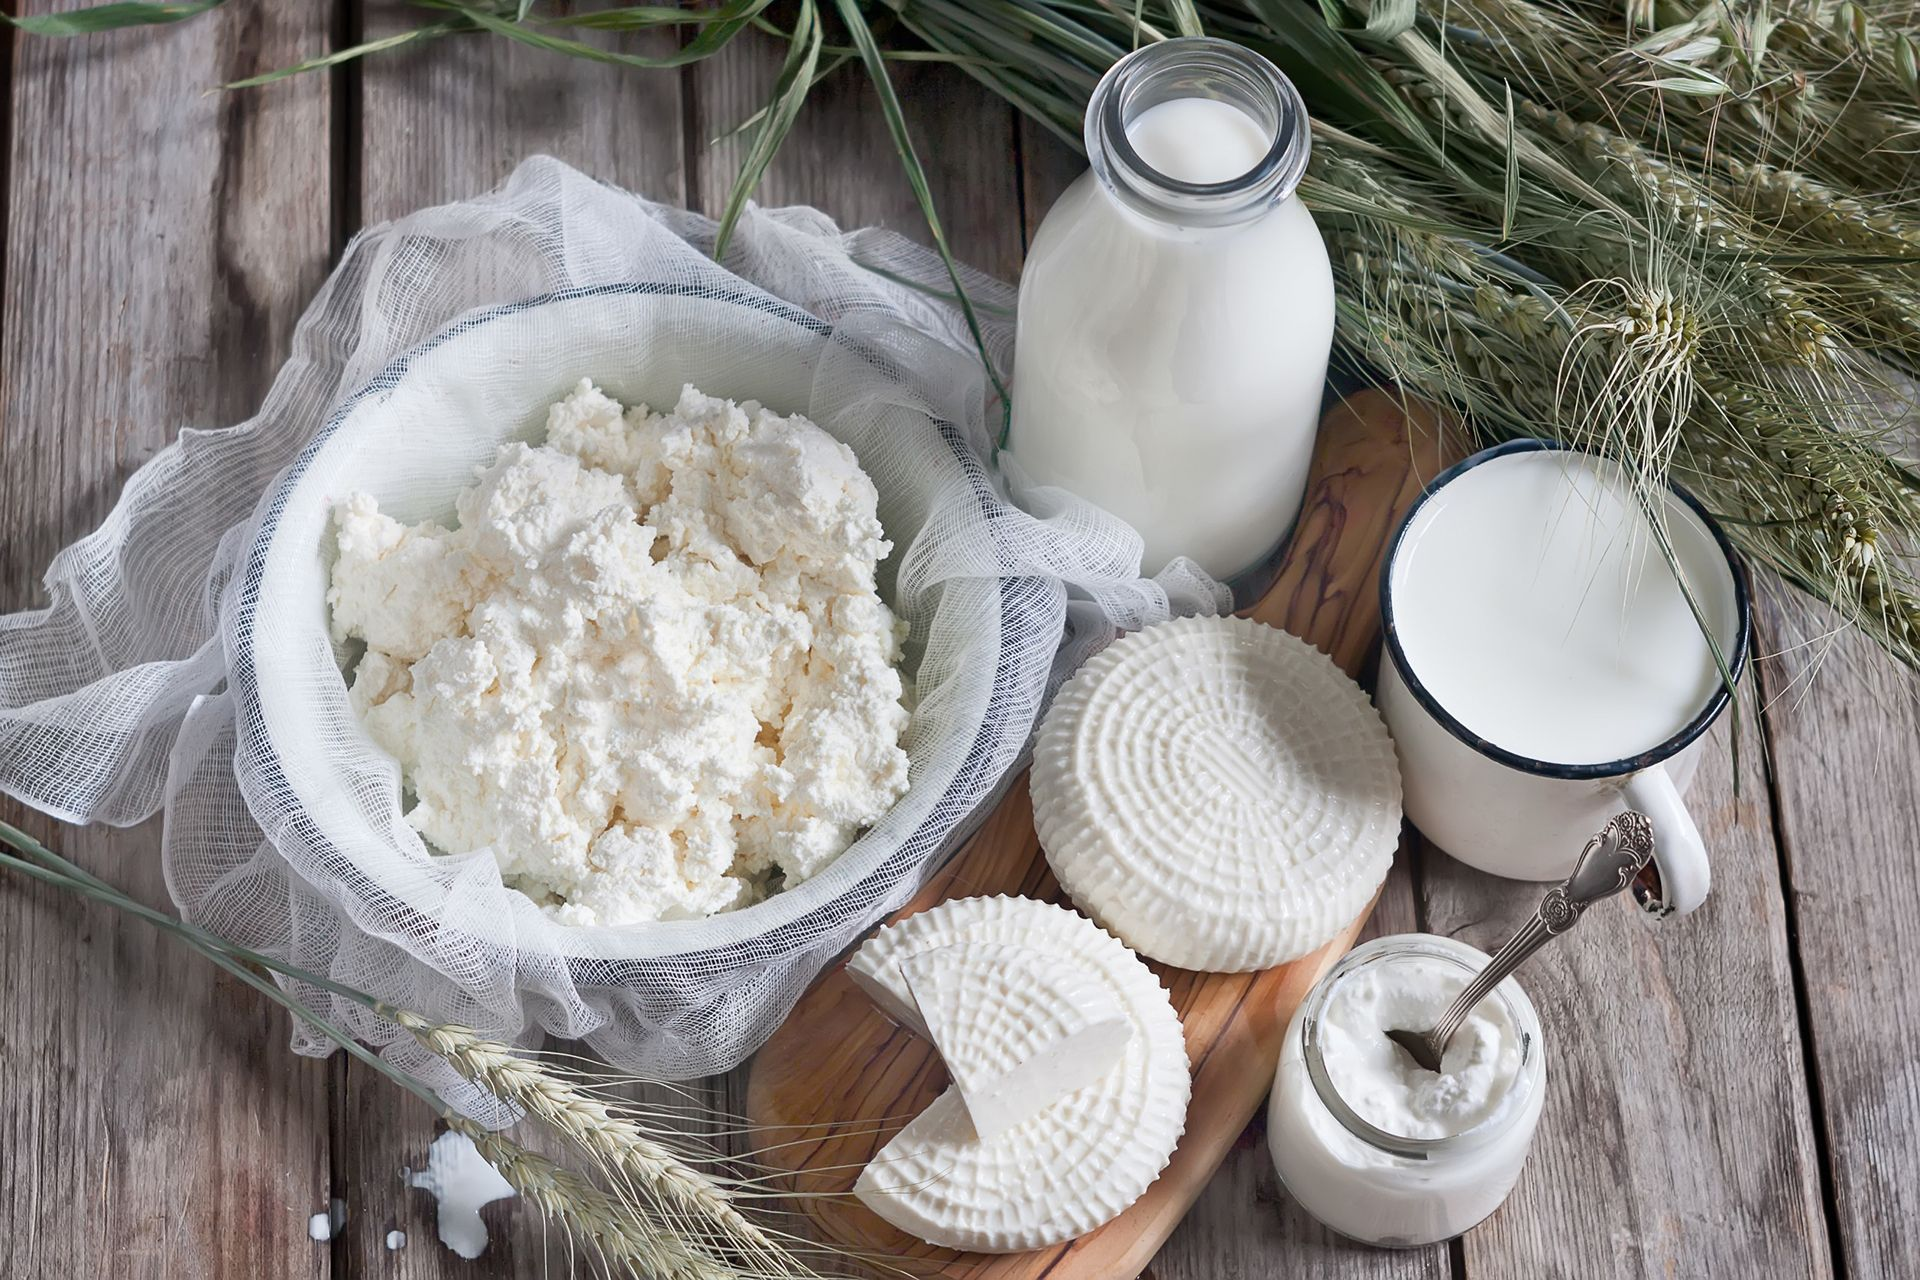 White cheese from cow's milk